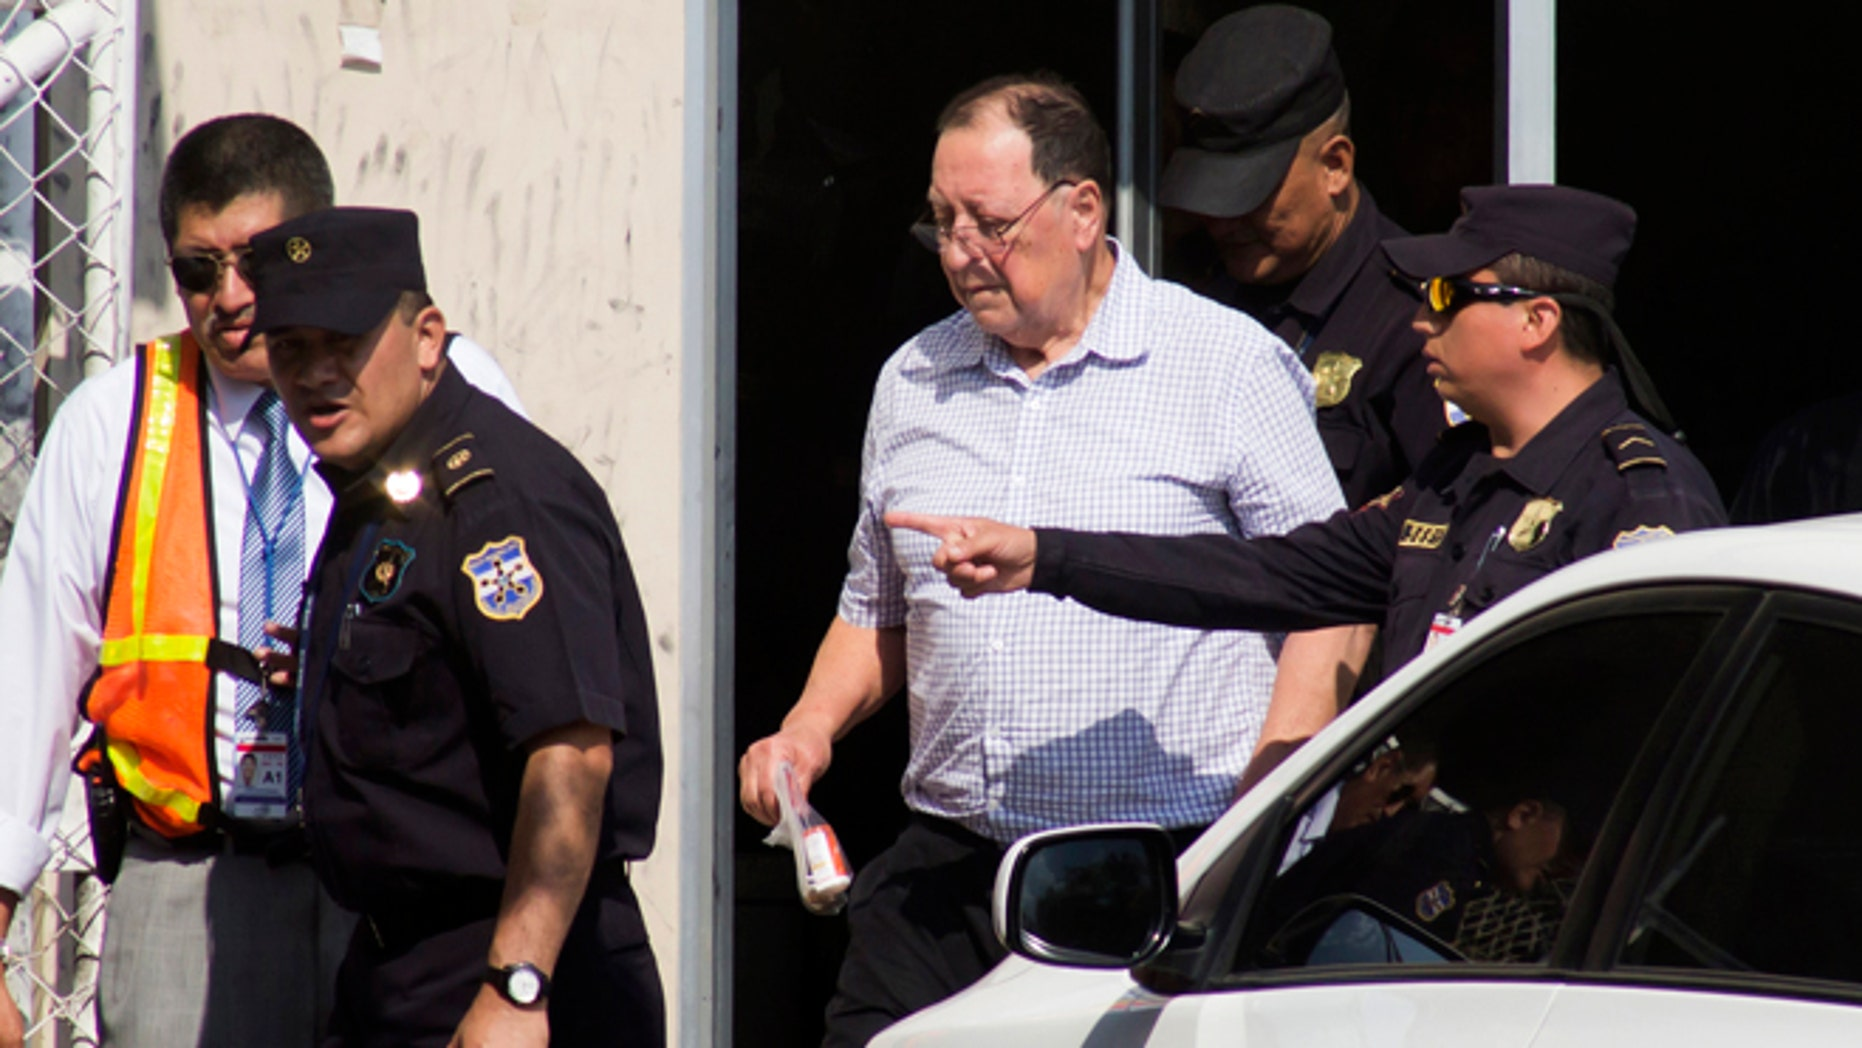 Police escort former General Eugenio Vides Casanova to a car outside the airport in San Salvador, El Salvador, Wednesday, April 8, 2015. The ex-general linked to human rights abuses during El Salvador's civil war in the 1980's was deported by the U.S. and flown to his home country, where officials said he faces no charges or restrictions on his movements. (AP Photo/Salvador Melendez)